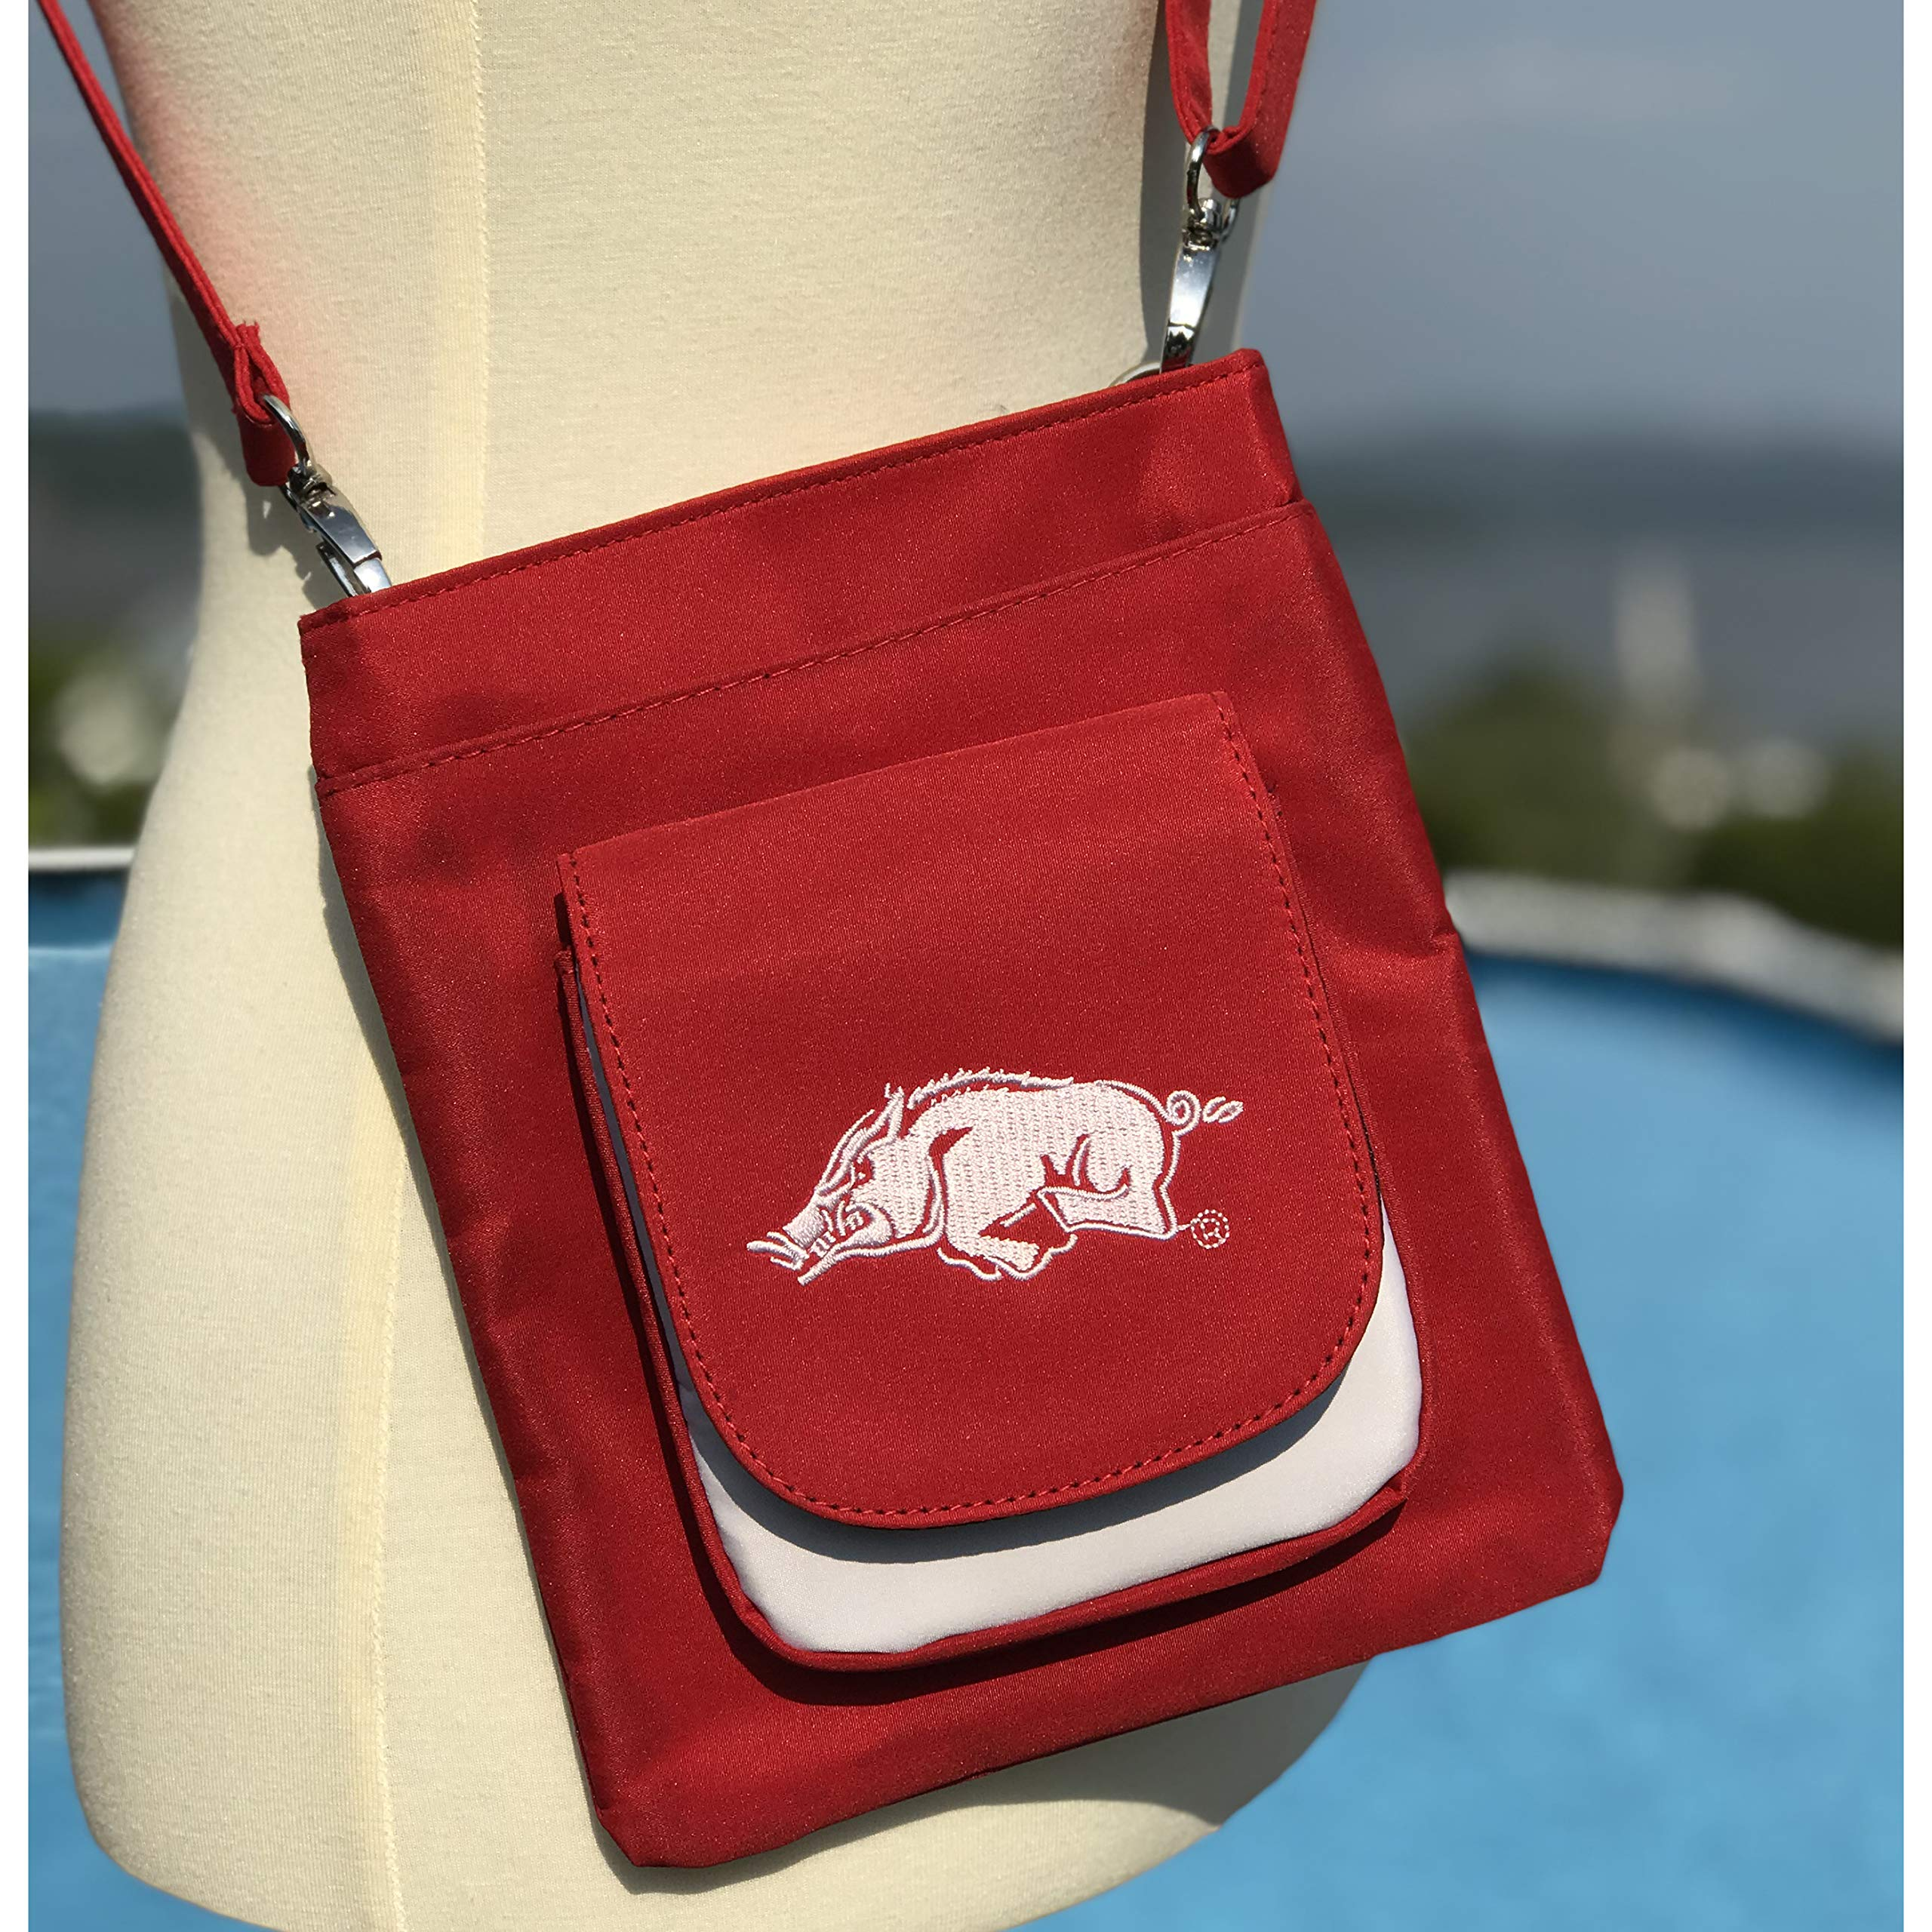 NCAA Arkansas Razorbacks Crossbody Purse-Handbag-Travel